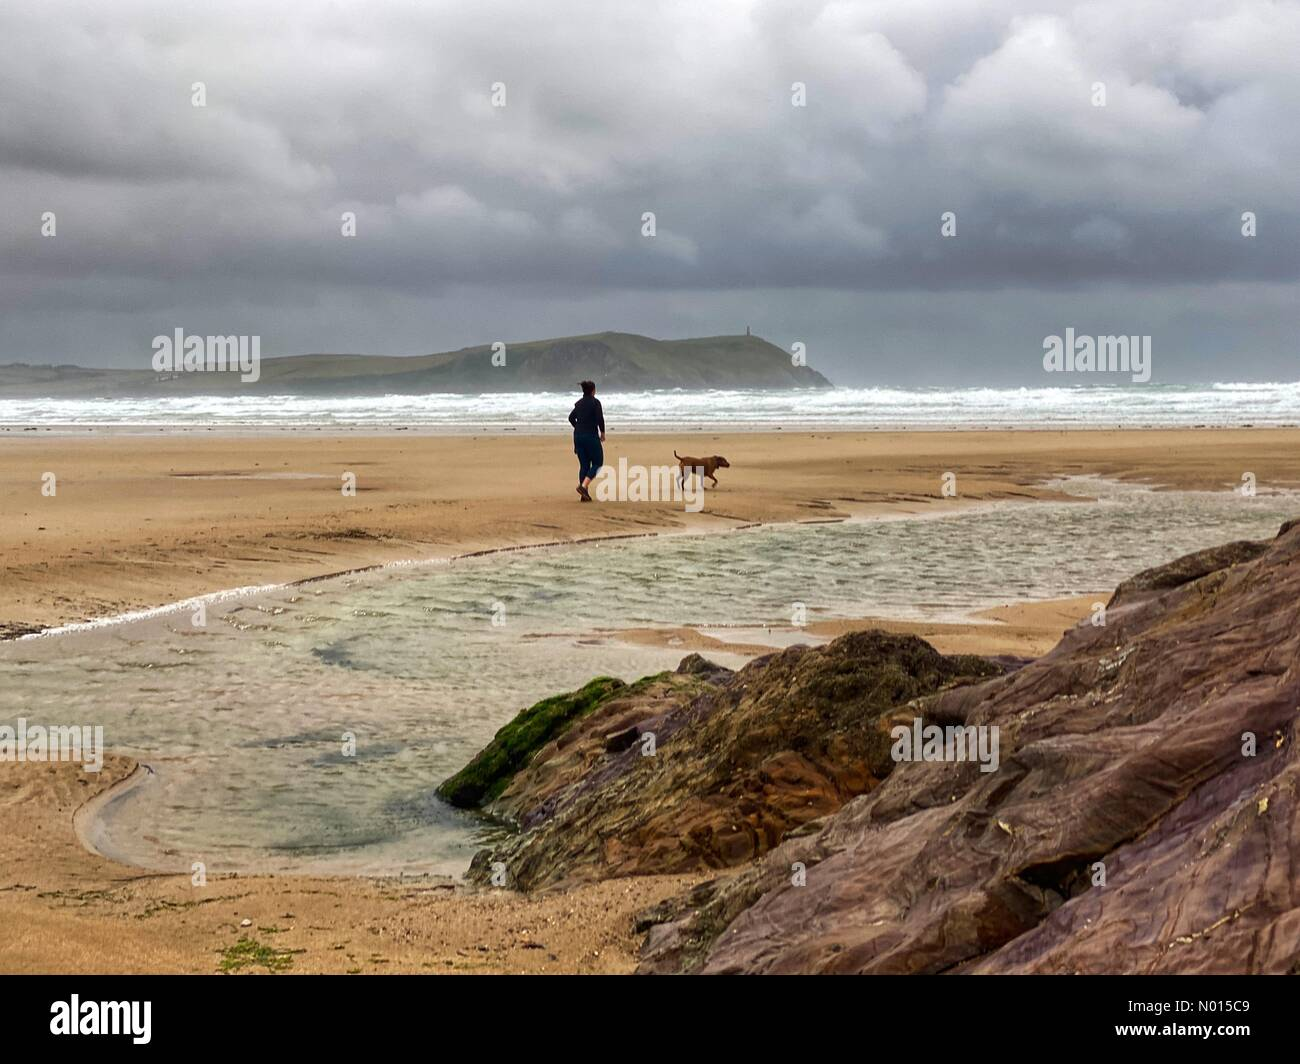 Polzeath beach, Cornwall, UK. 30th July, 2021: UK Weather: Storm Evert angry clouds over dog walker on Polzeath beach, Cornwall. 30th July, 2021. Credit nidpor/ Alamy Live News Credit: nidpor/StockimoNews/Alamy Live News Stock Photo